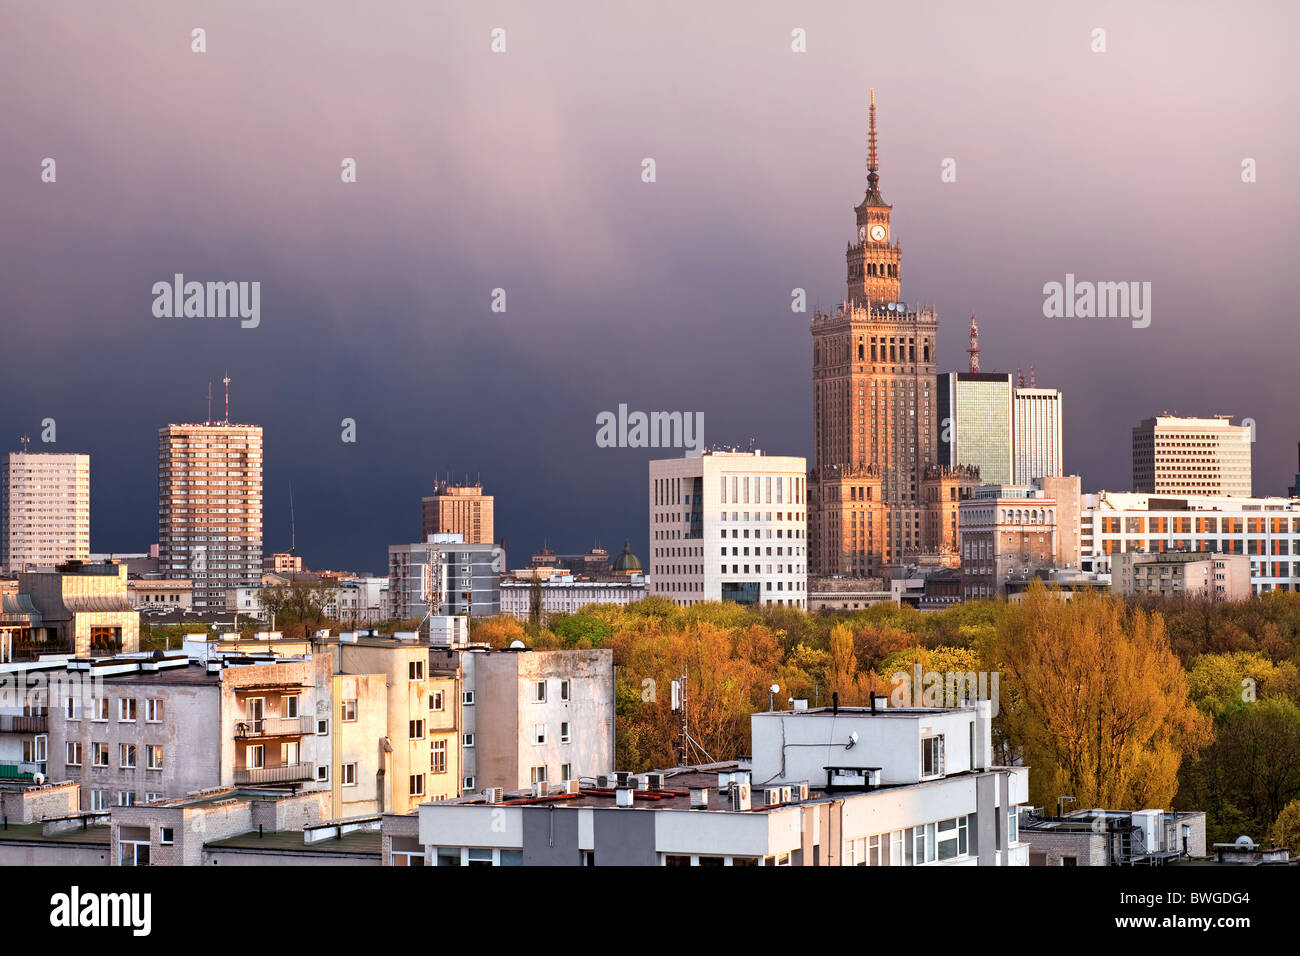 Warsaw, capital city of Poland, featuring Palace of Culture and Science, Srodmiescie district. Sunset time, stormy - Stock Image